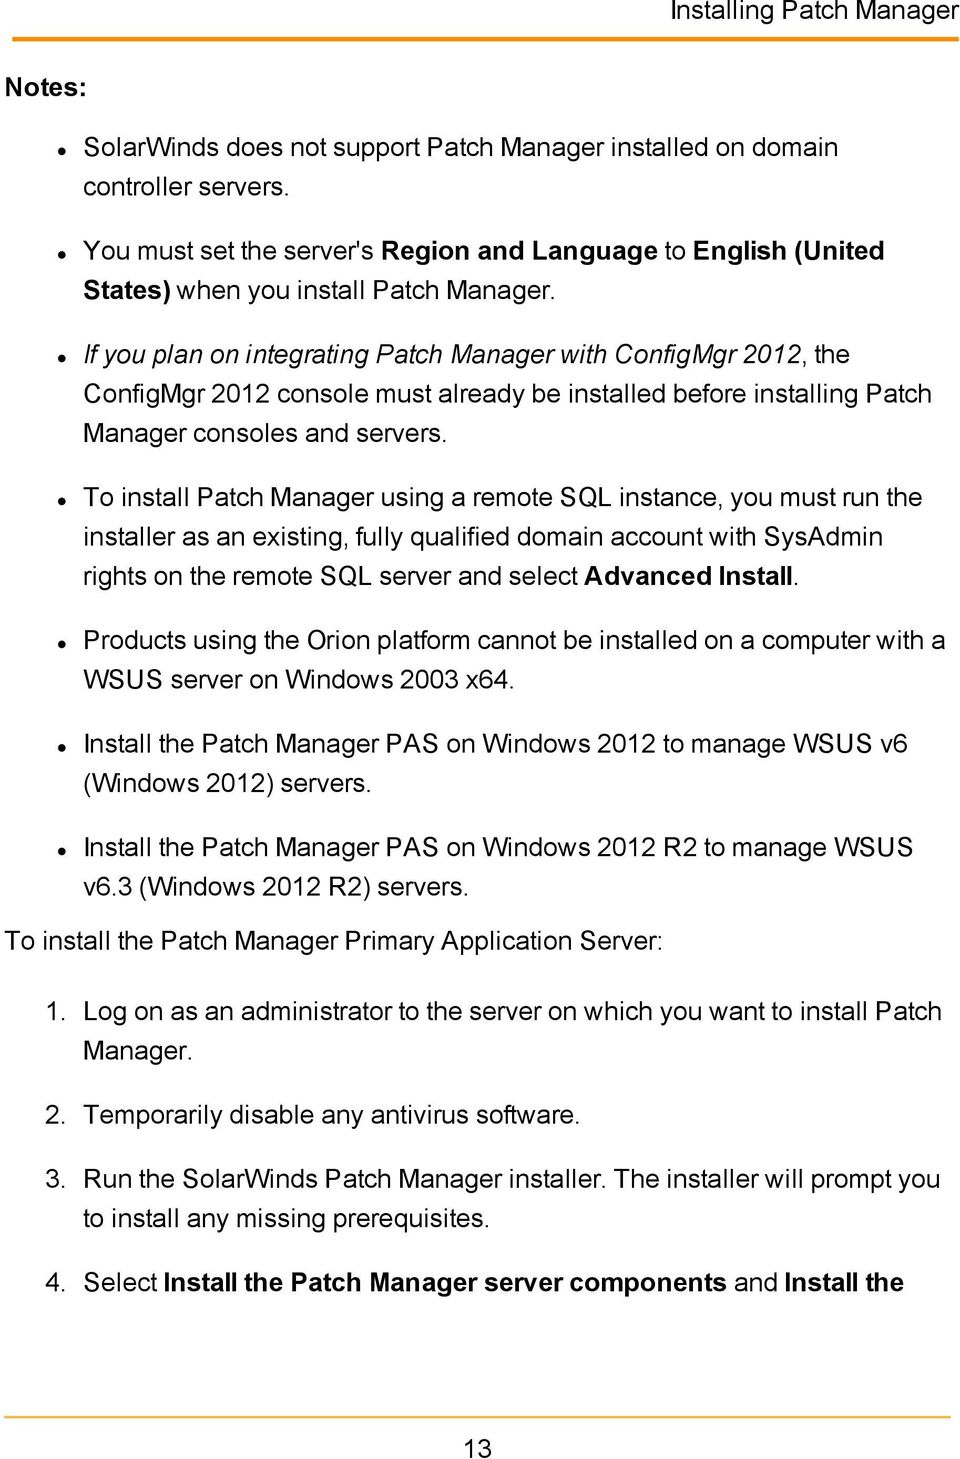 If you plan on integrating Patch Manager with ConfigMgr 2012, the ConfigMgr 2012 console must already be installed before installing Patch Manager consoles and servers.